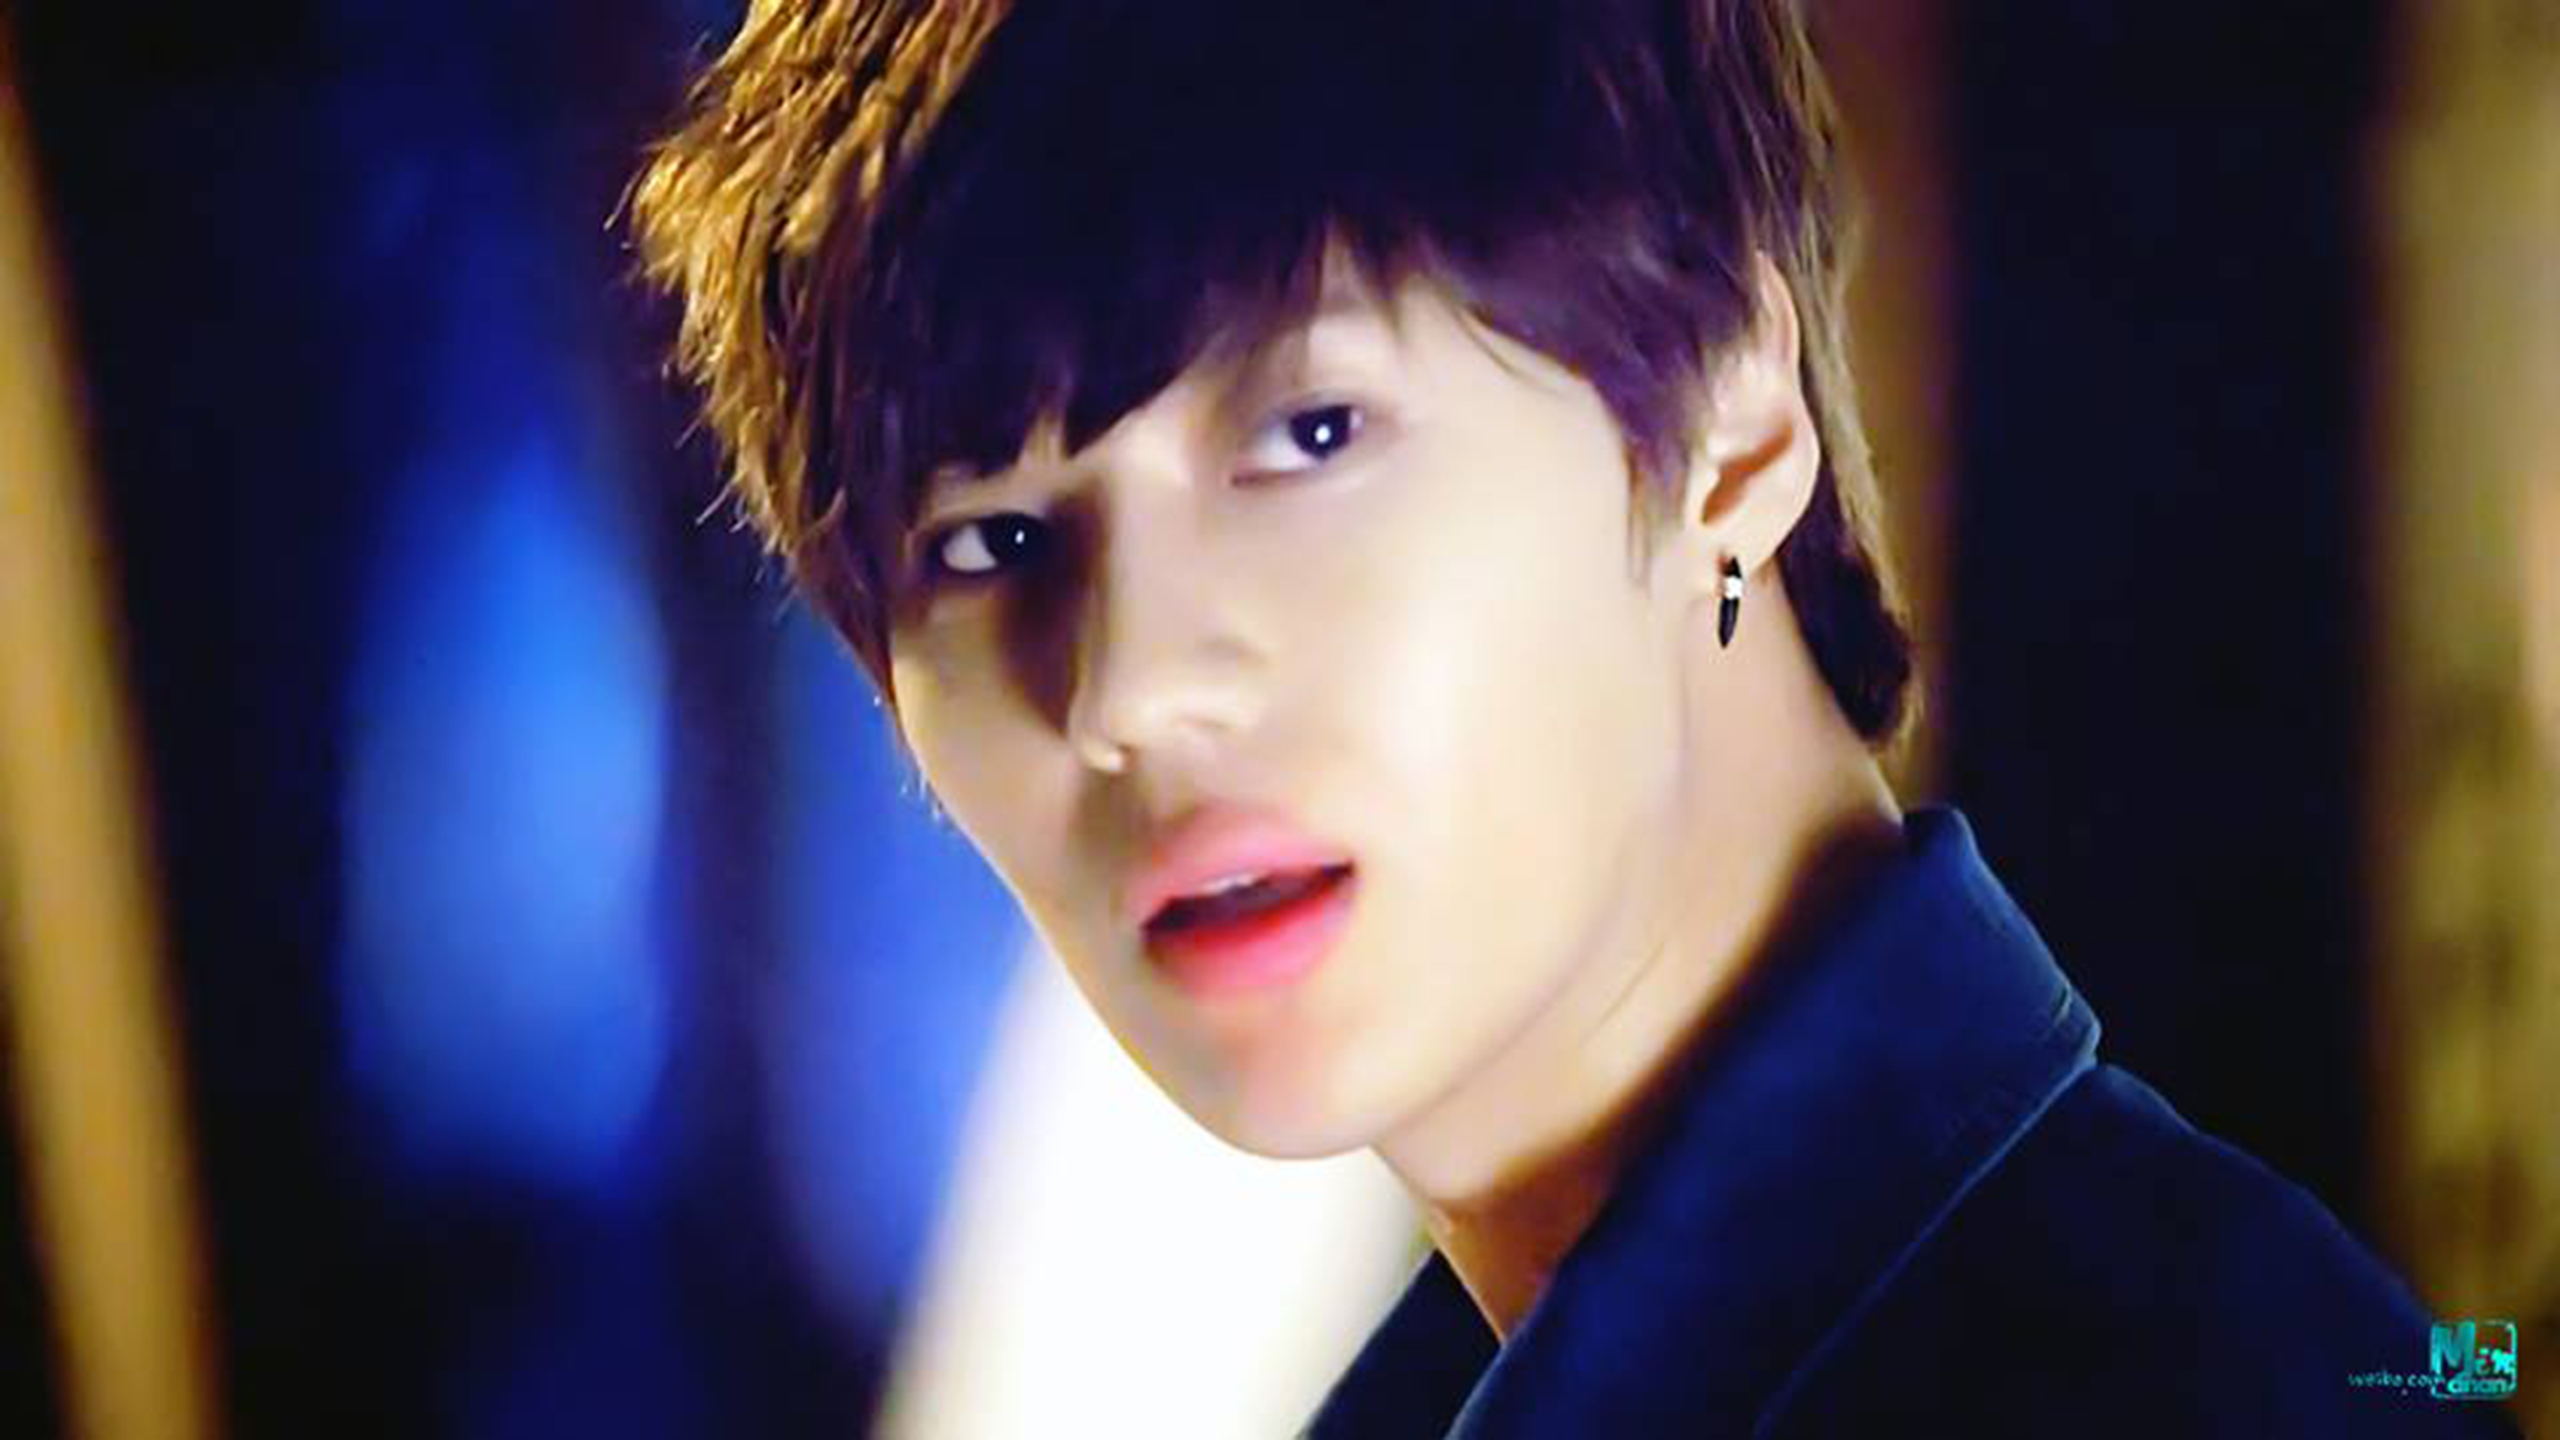 Taemin Wallpaper   Lee Taemin Wallpaper 34851315 2560x1440